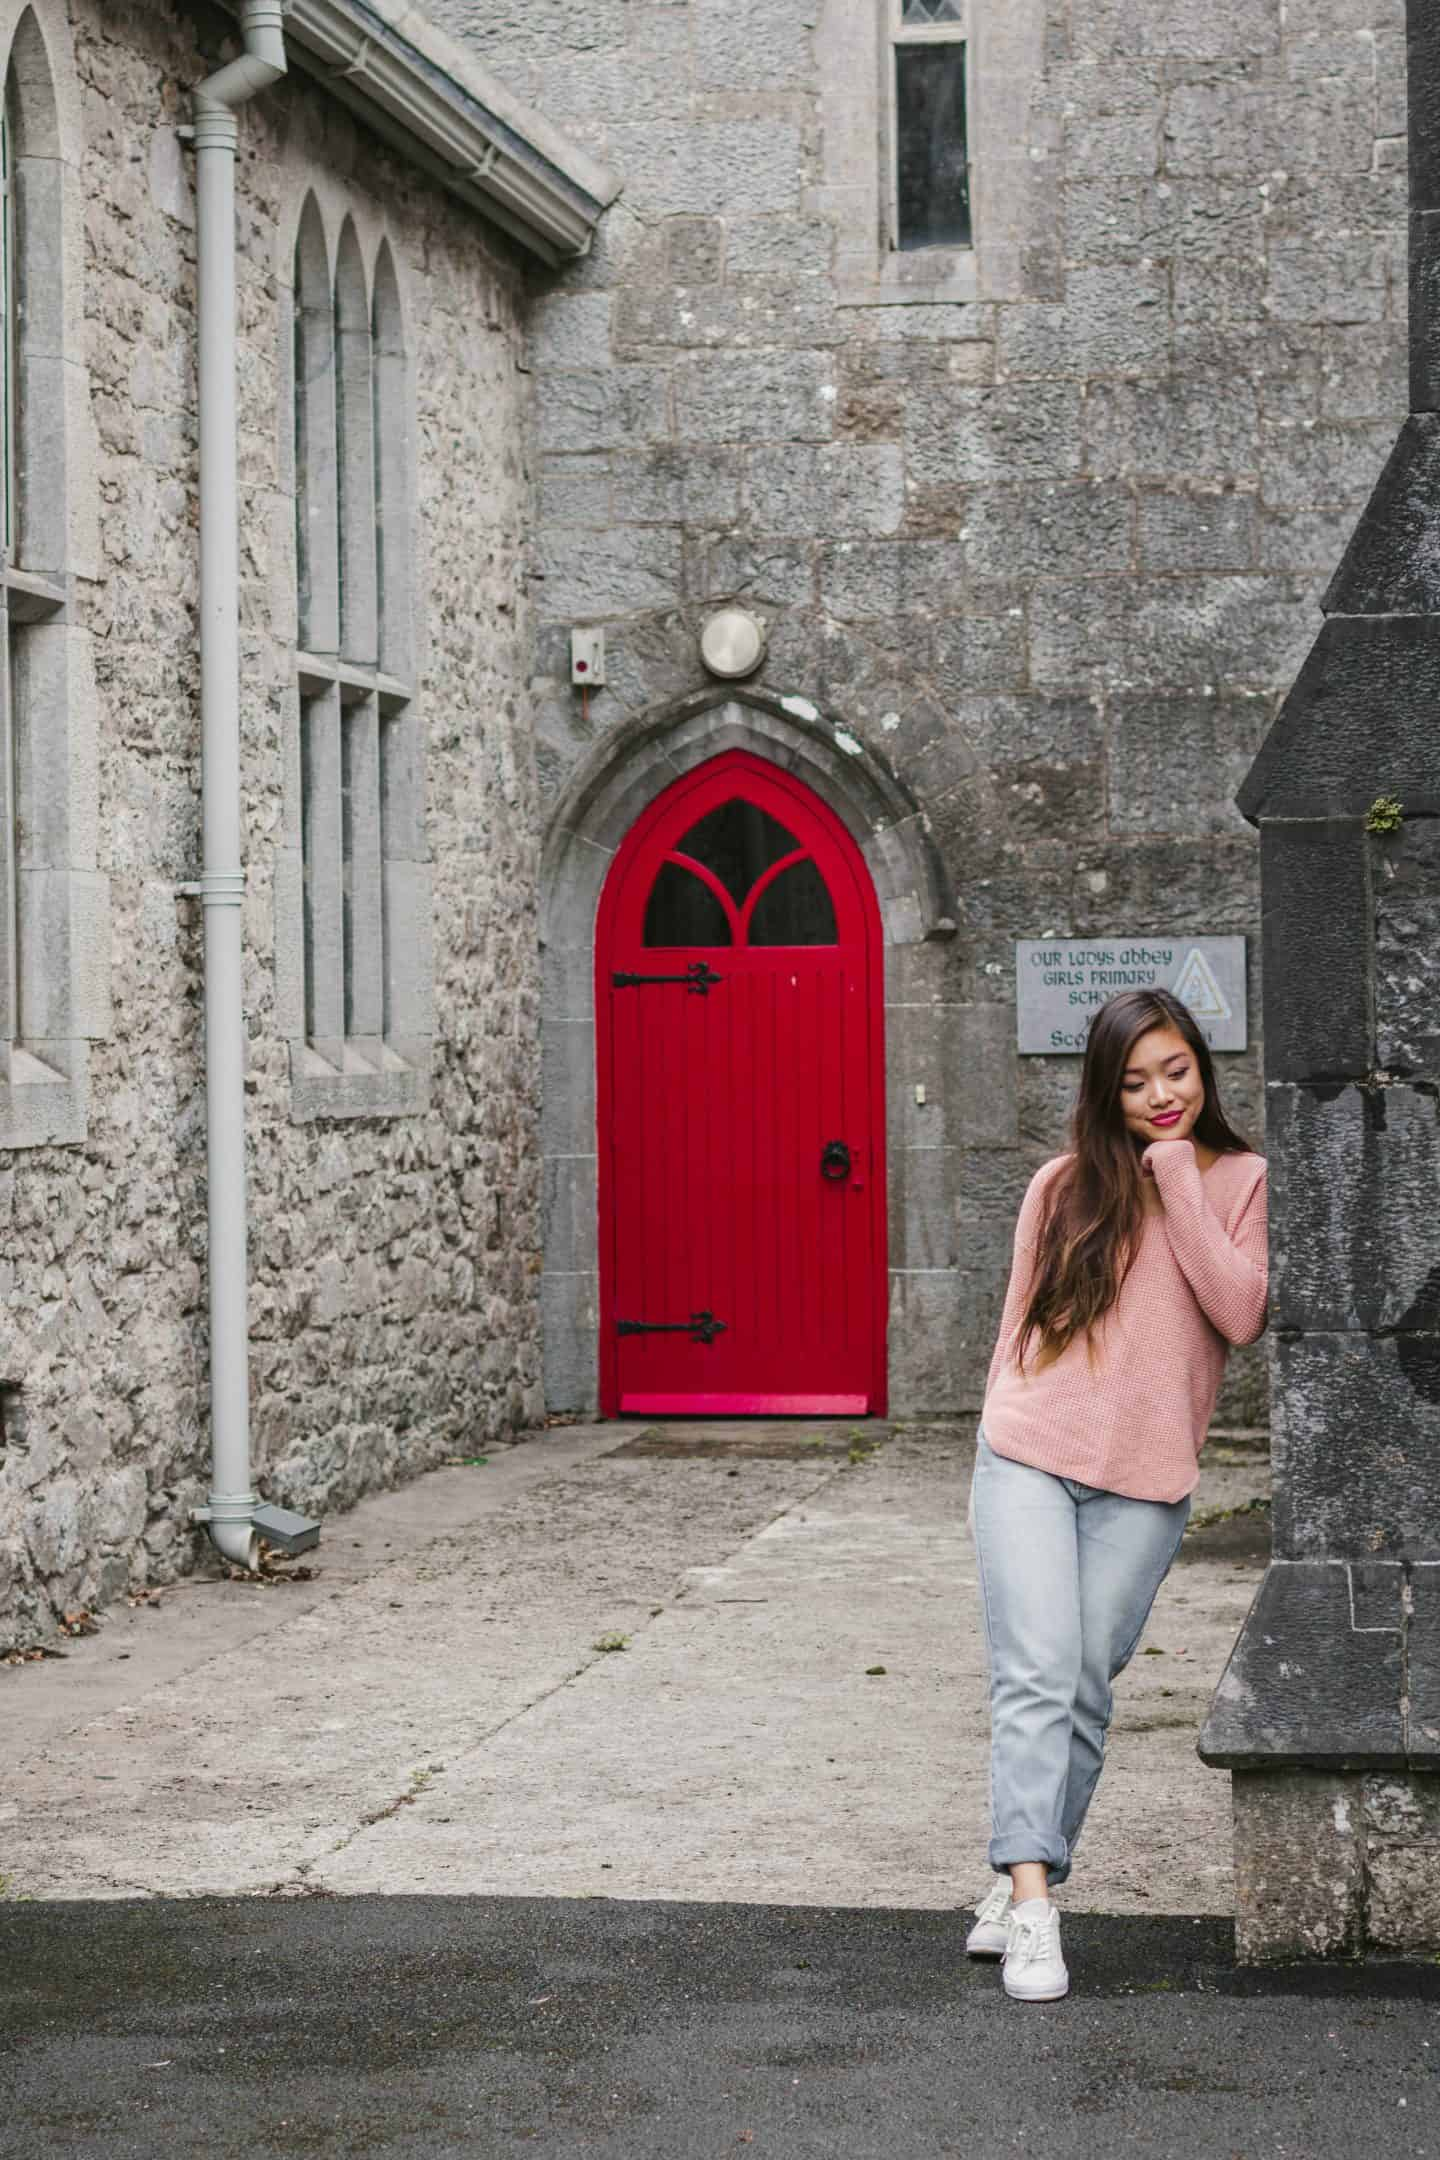 The Village of Adare is known as the prettiest town in Ireland